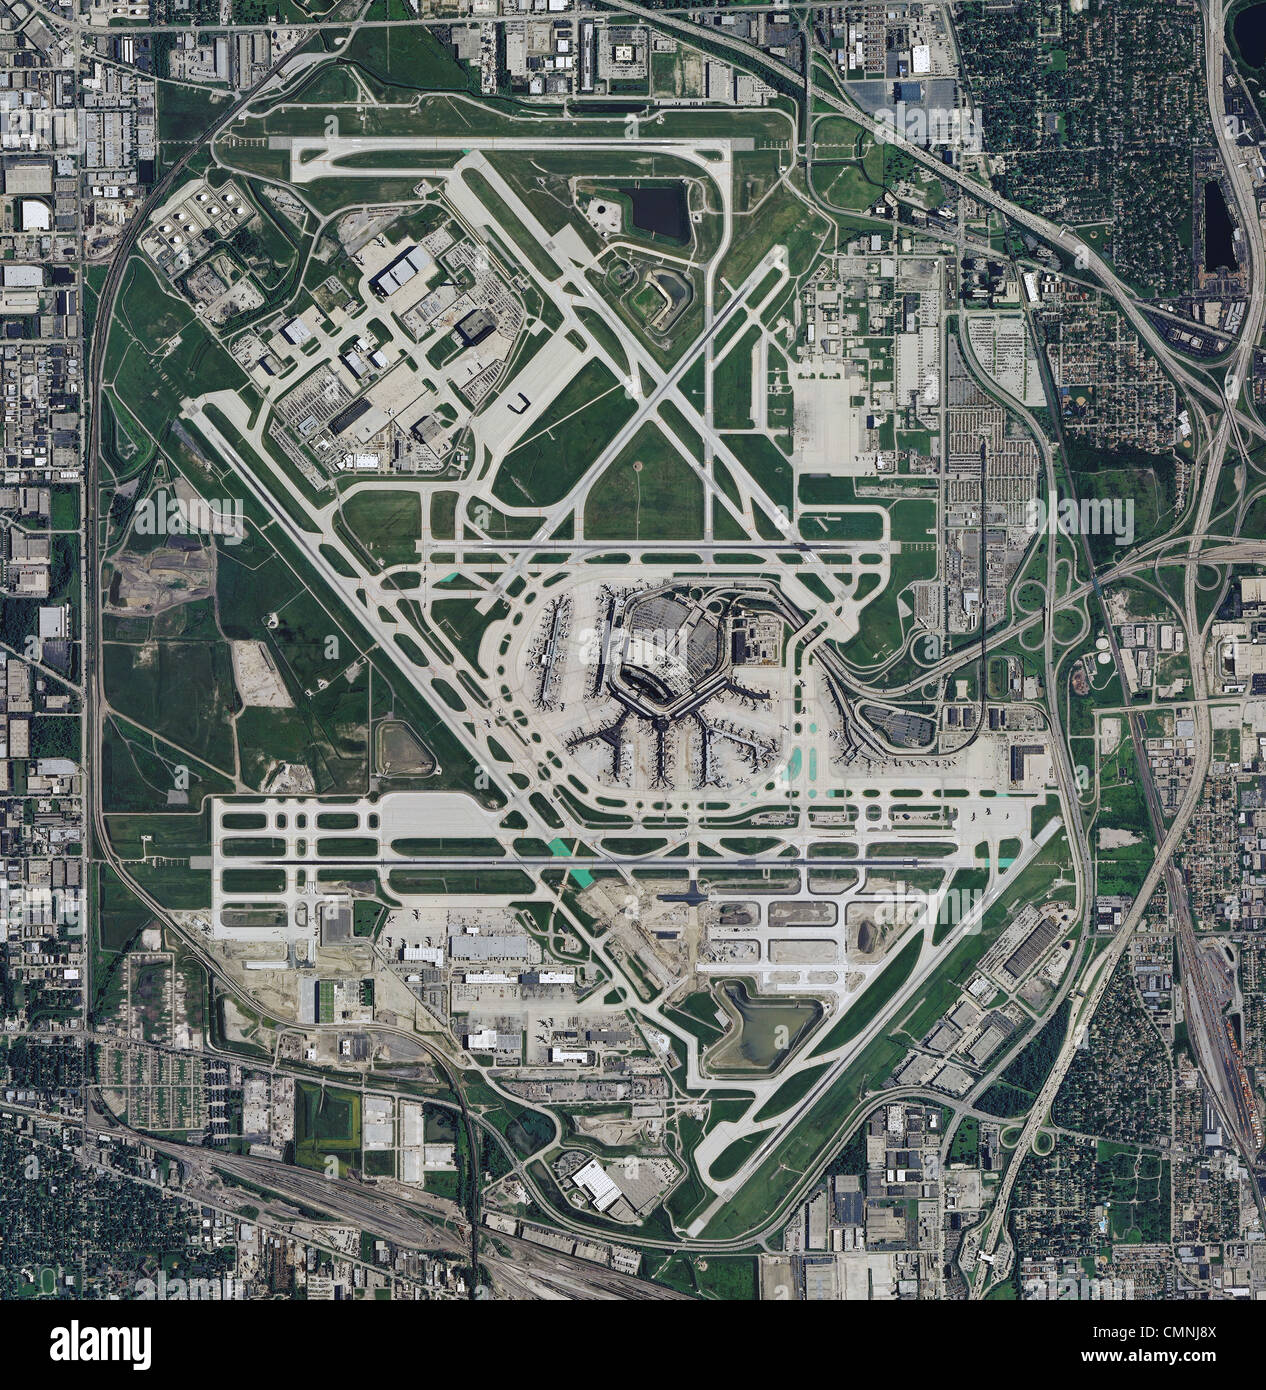 Aerial Photo Map Of Chicago OHare International Airport ORD Stock - Chicago map airports